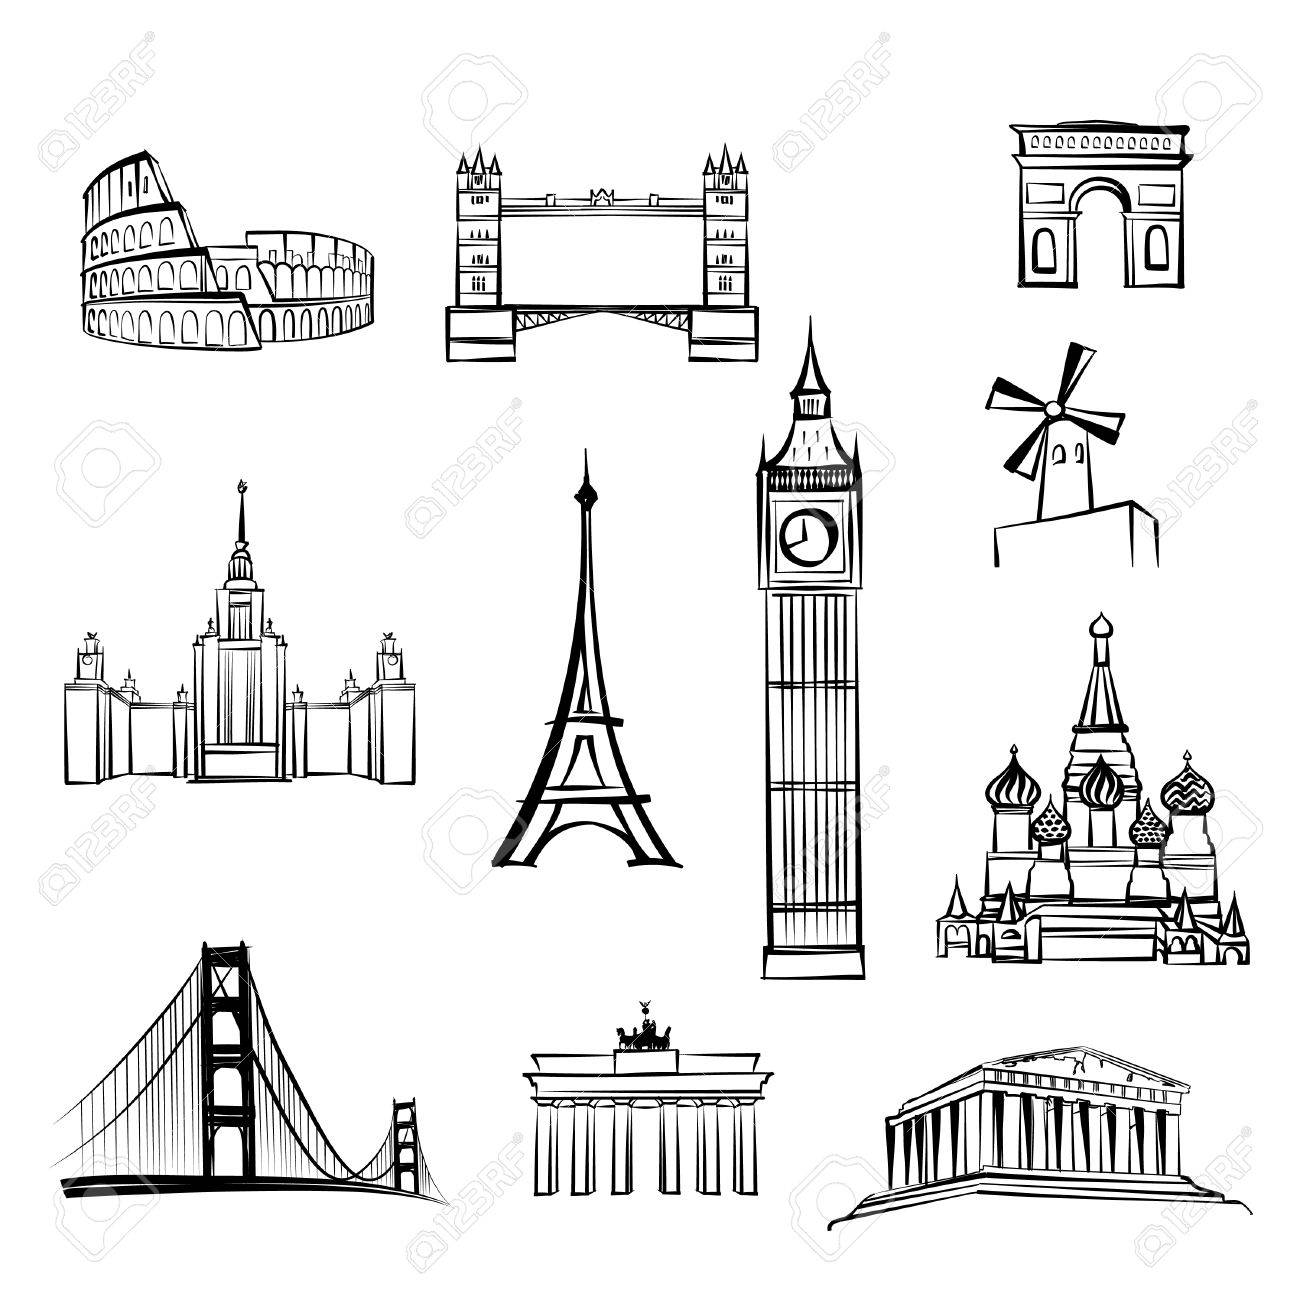 world tourist attractions symbols World famous city landmarks Travel icon set Doodle engraved sightseeings of London, Rome, Berlin, Athens, Moscow, San Francisco, Paris. - 58635351